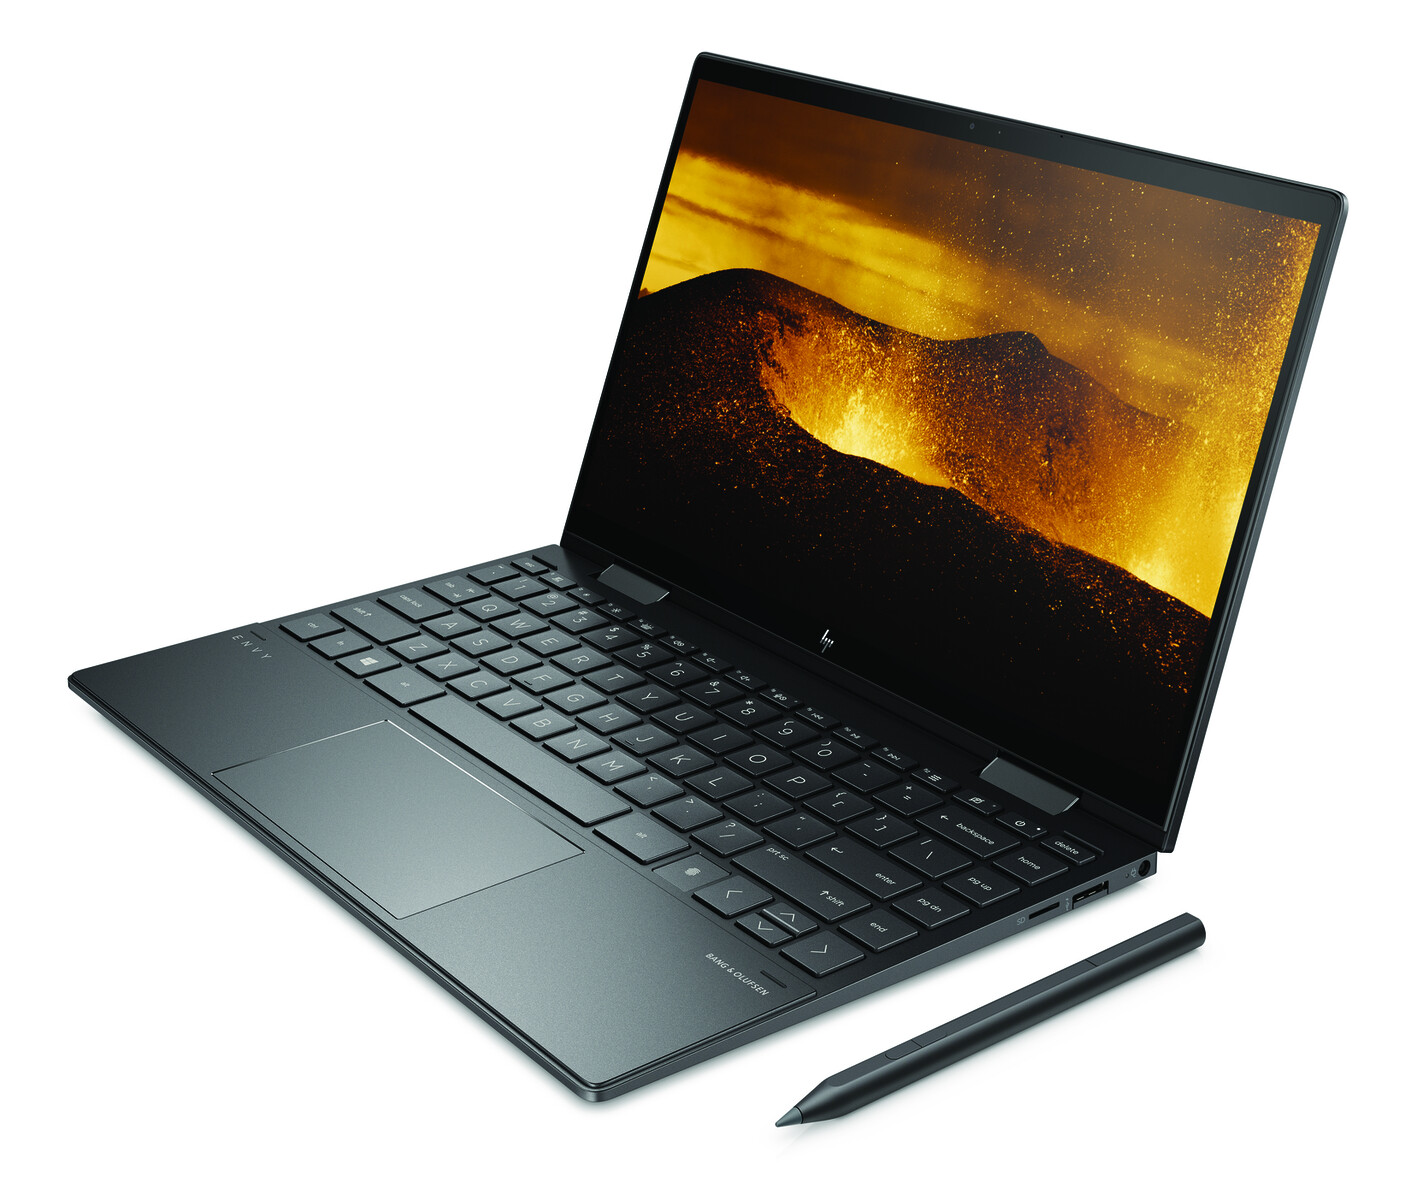 HP Envy x360 13 (13.3-inch, 2020) Series